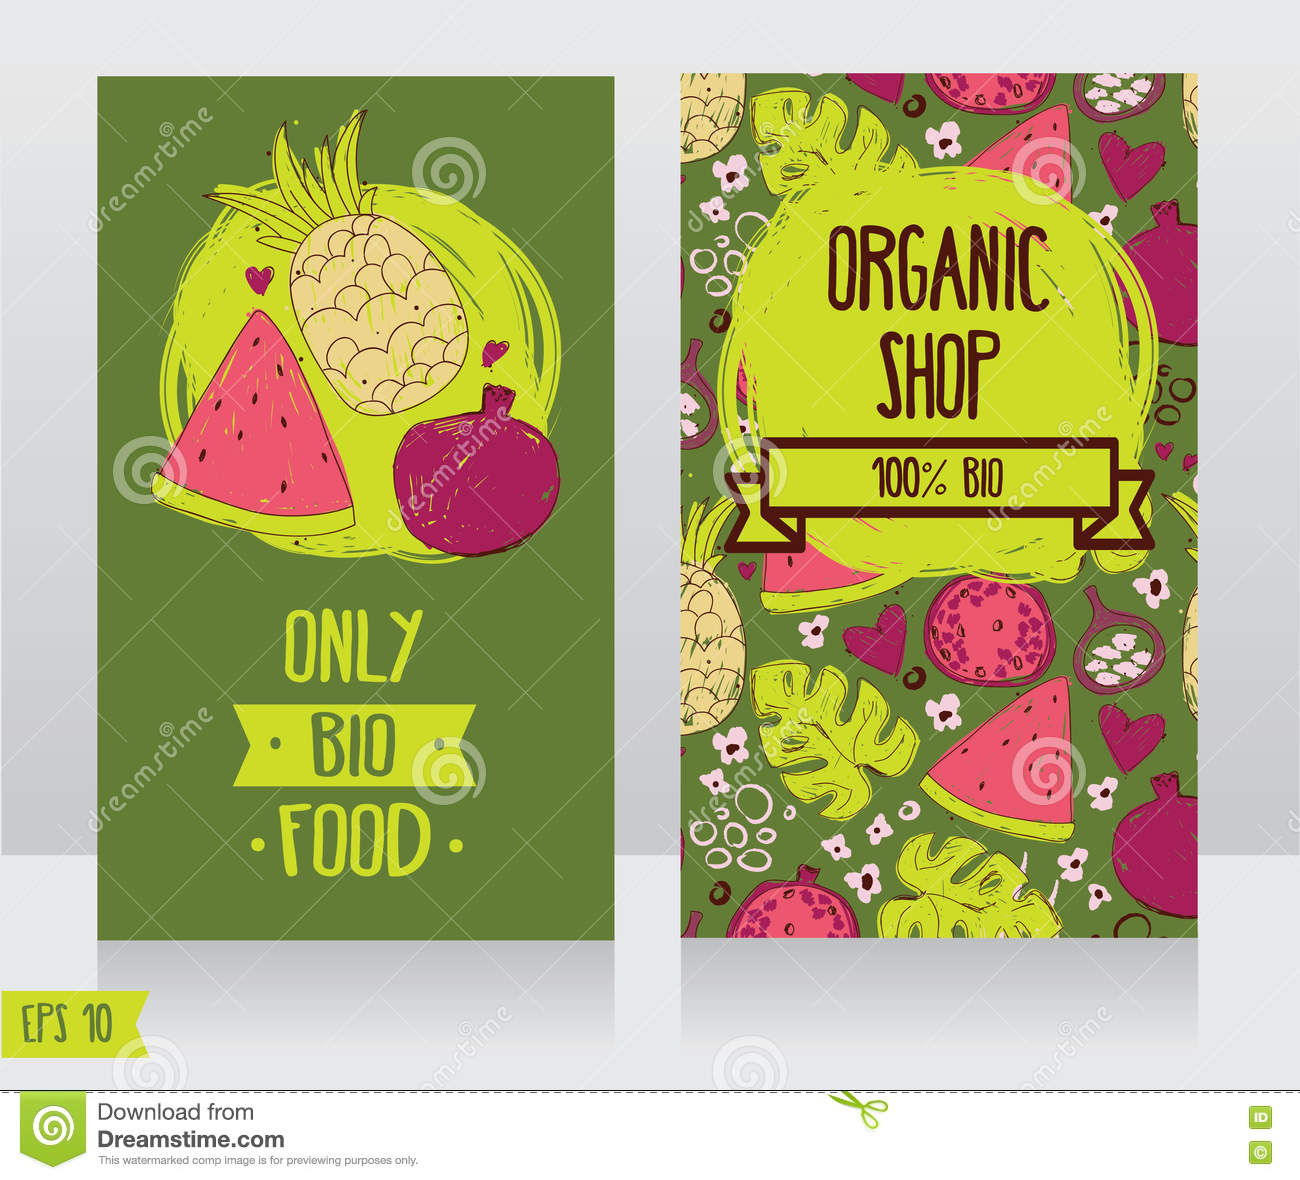 Business cards template for organic foods shop or vegan cafe stock business cards template for organic foods shop or vegan cafe cheaphphosting Choice Image